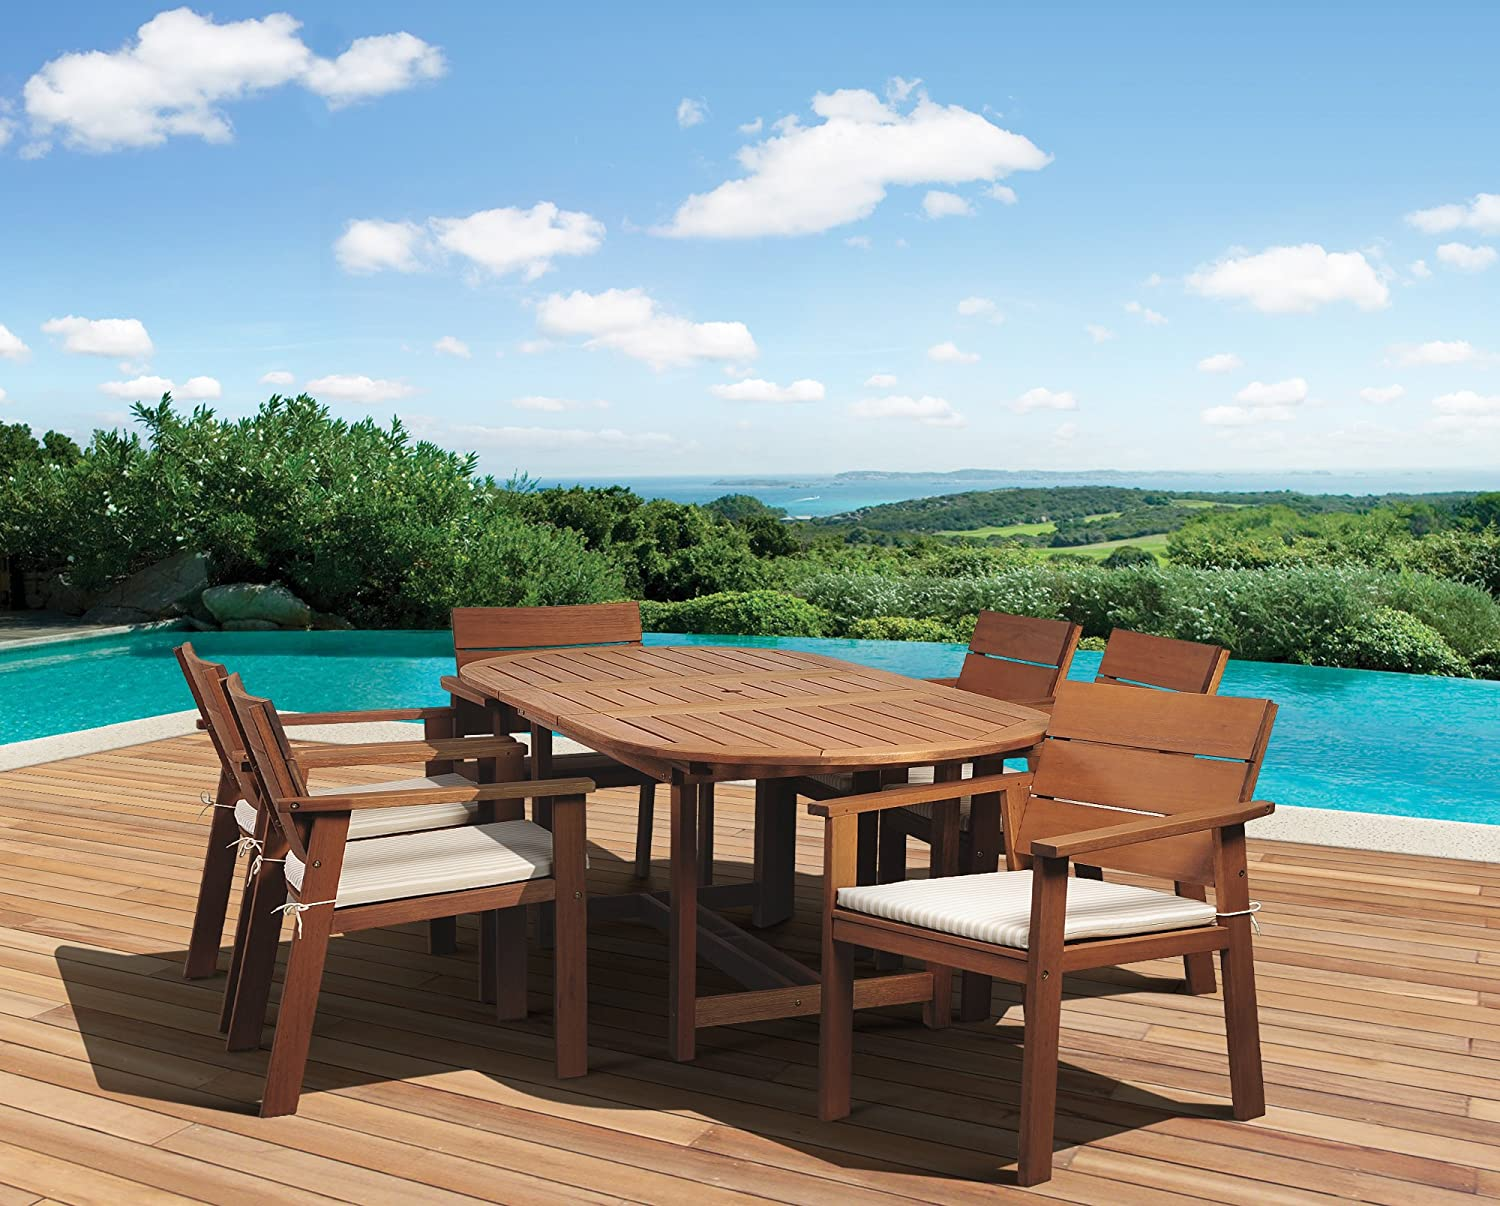 Amazon com   Amazonia 7 Piece Nelson Eucalyptus Oval Extendable Dining Set    Outdoor And Patio Furniture Sets   Patio  Lawn   GardenAmazon com   Amazonia 7 Piece Nelson Eucalyptus Oval Extendable  . Extendable Outdoor Dining Sets. Home Design Ideas